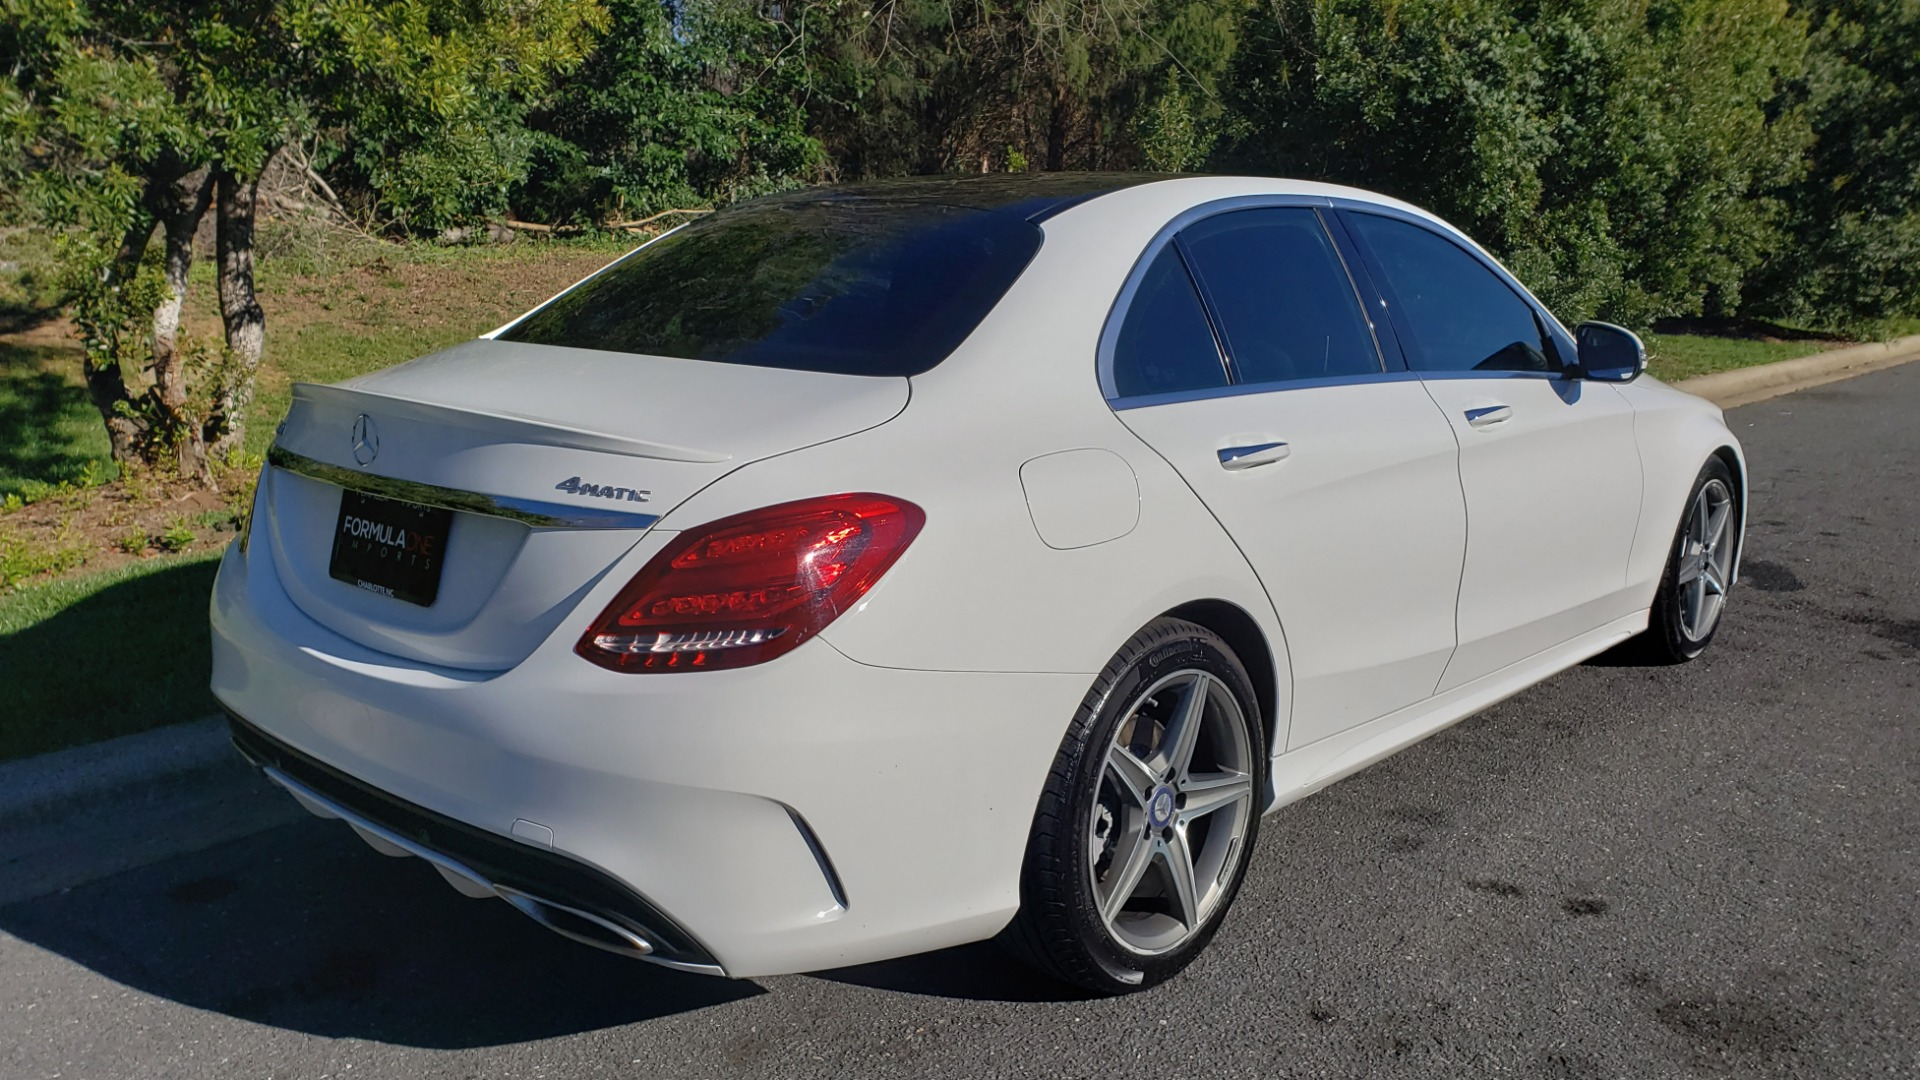 Used 2017 Mercedes-Benz C-CLASS C 300 SPORT / PREM PKG / PANO-ROOF / NAV / HTD STST / REARVIEW for sale Sold at Formula Imports in Charlotte NC 28227 6